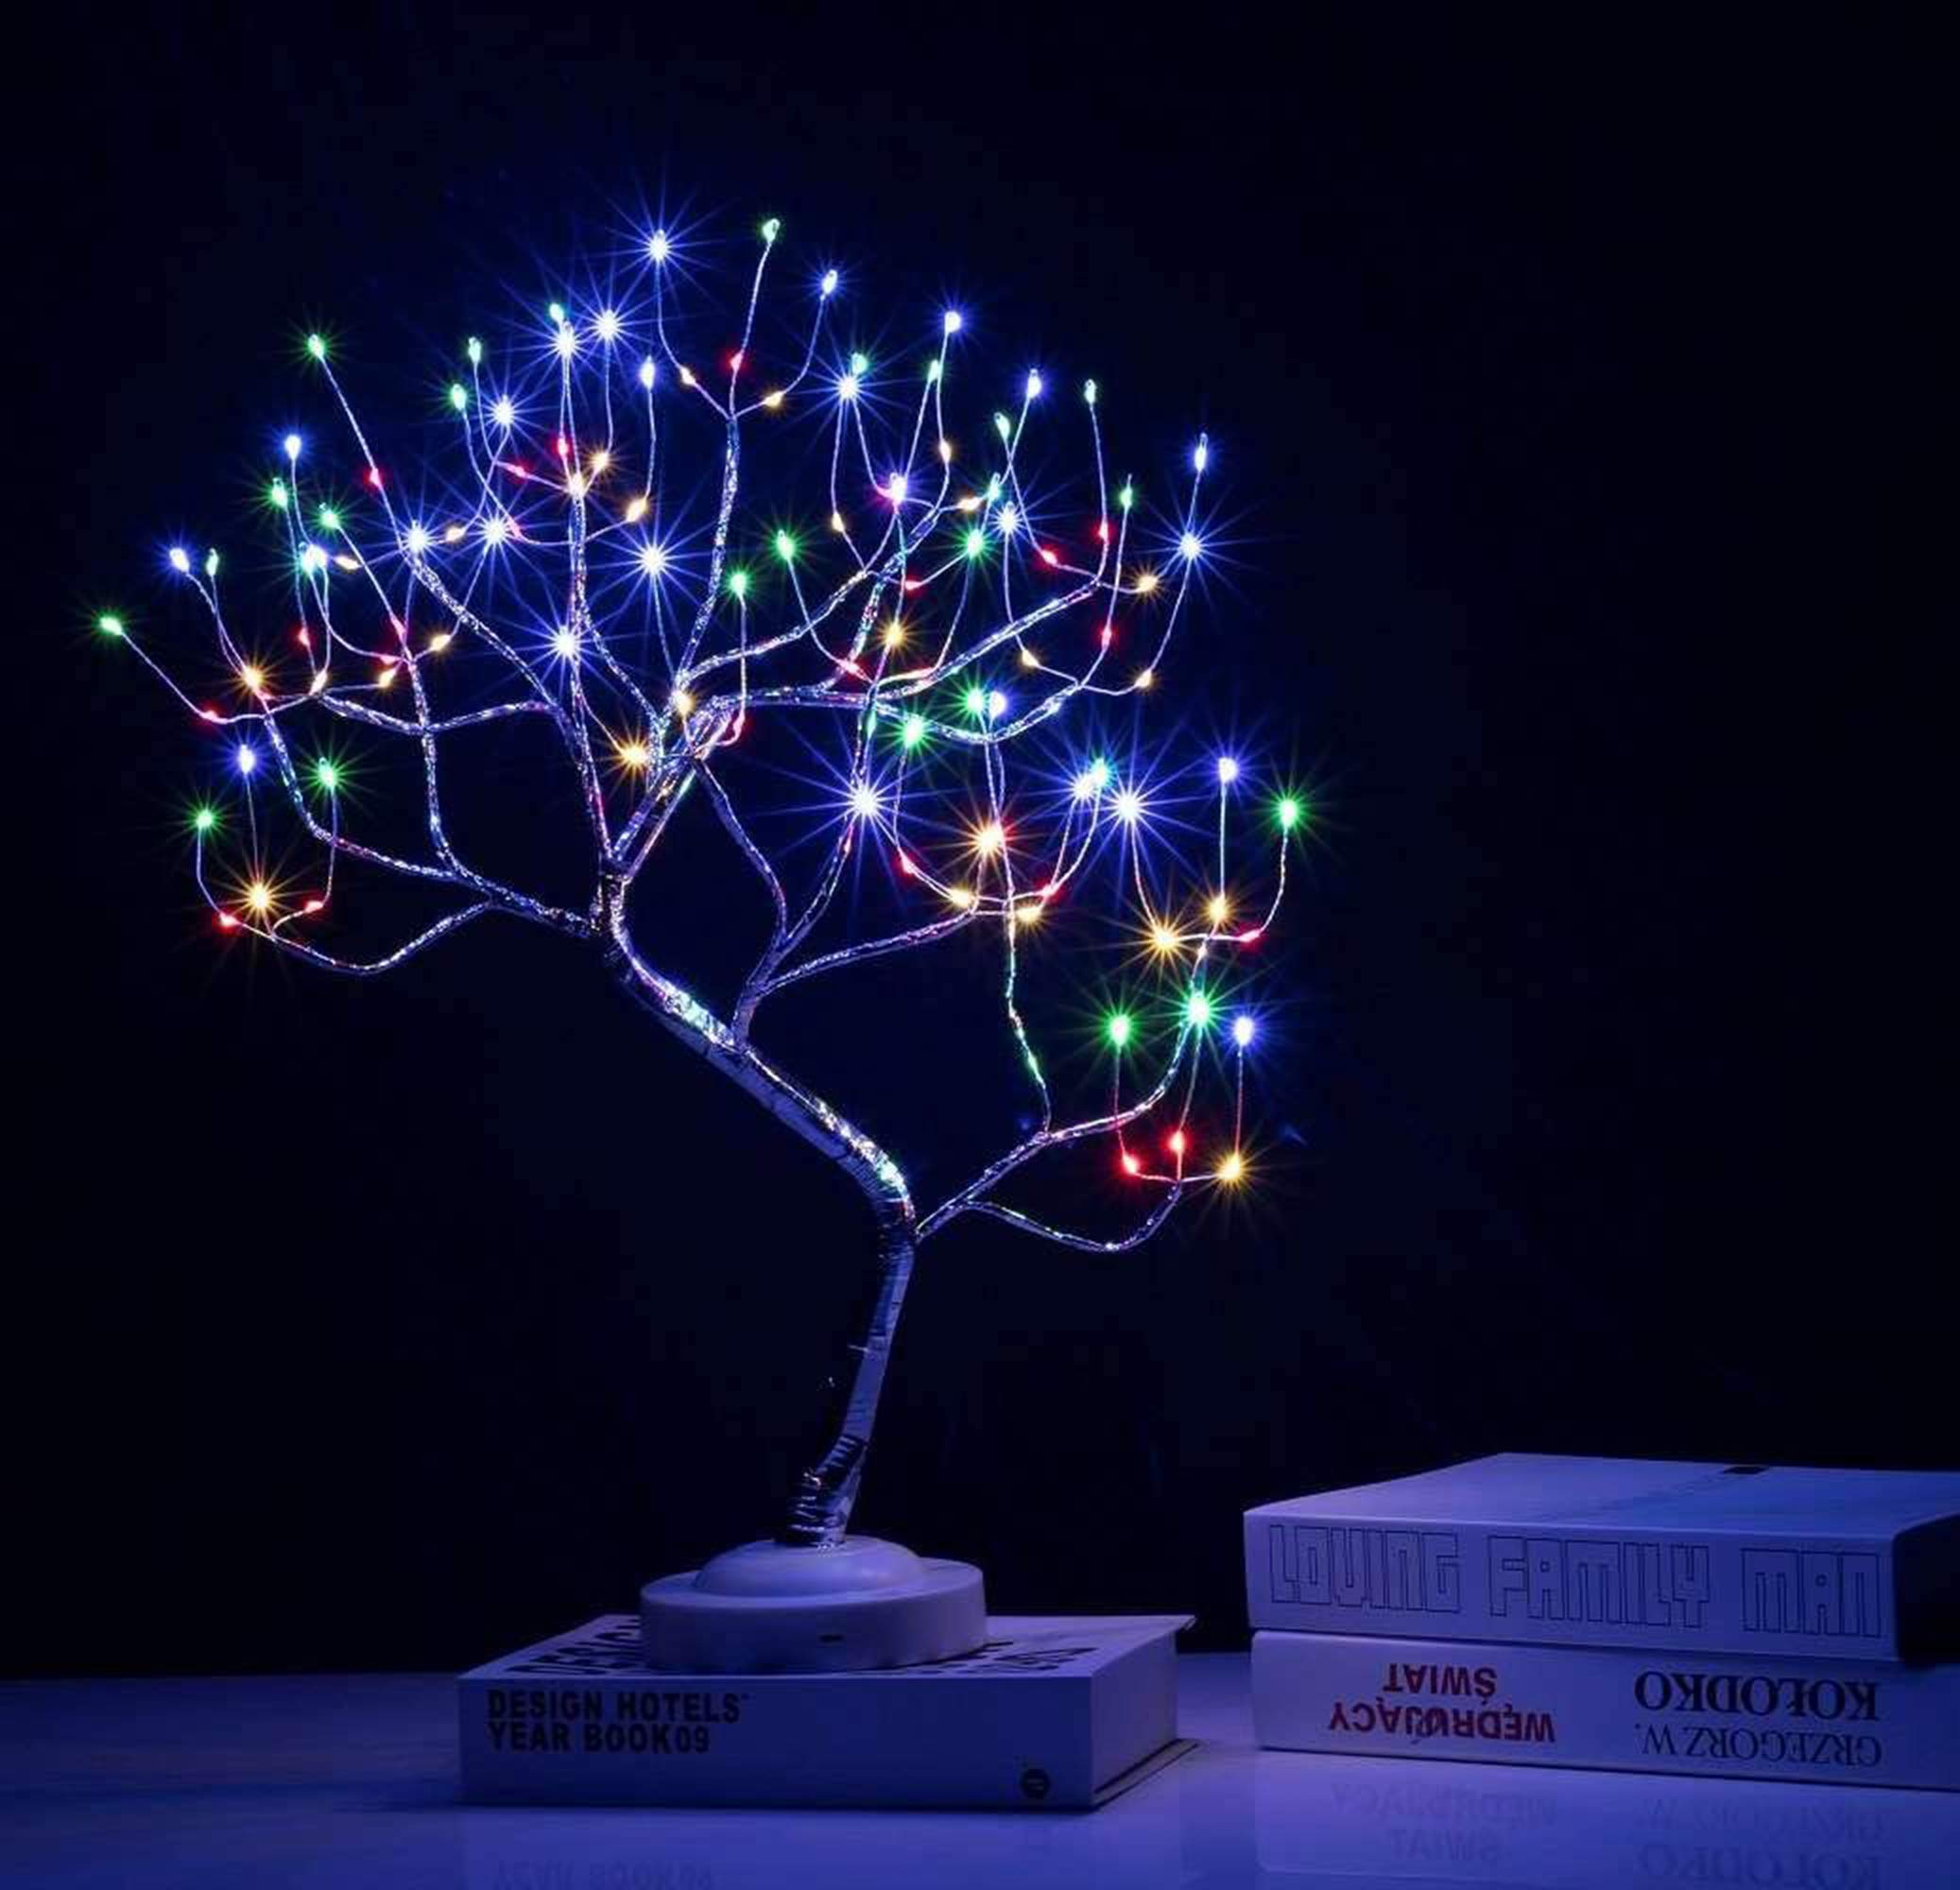 Led Bonsai Tree Light Artificial Light Tree 20 Inches,Battery/USB Operated,Adjustable Branches,6hrs Timer, for Home Decoration Night Light and Gift